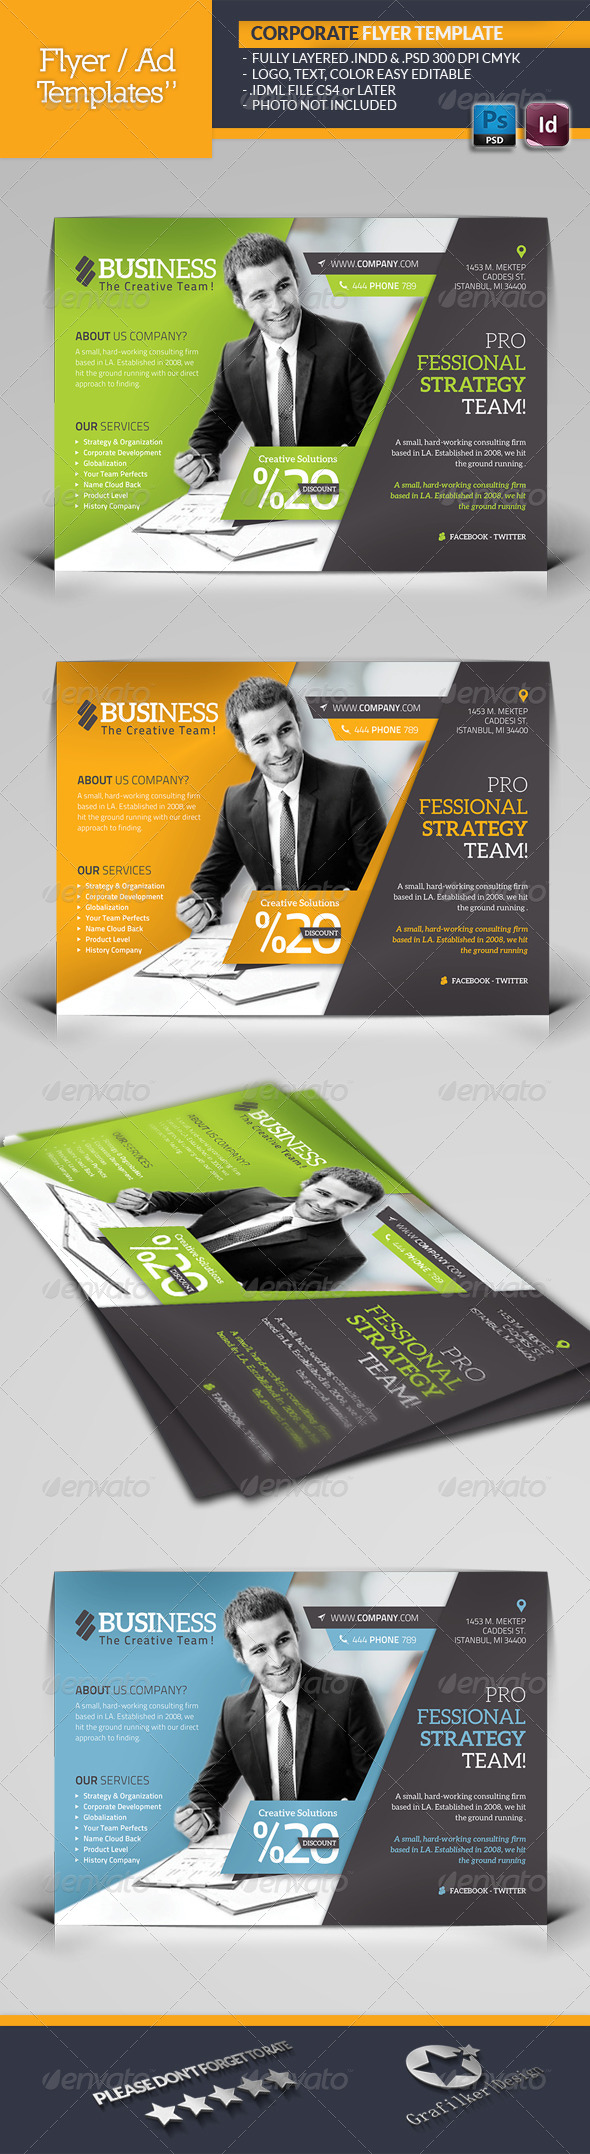 GraphicRiver Corporate Flyer Template 6045815